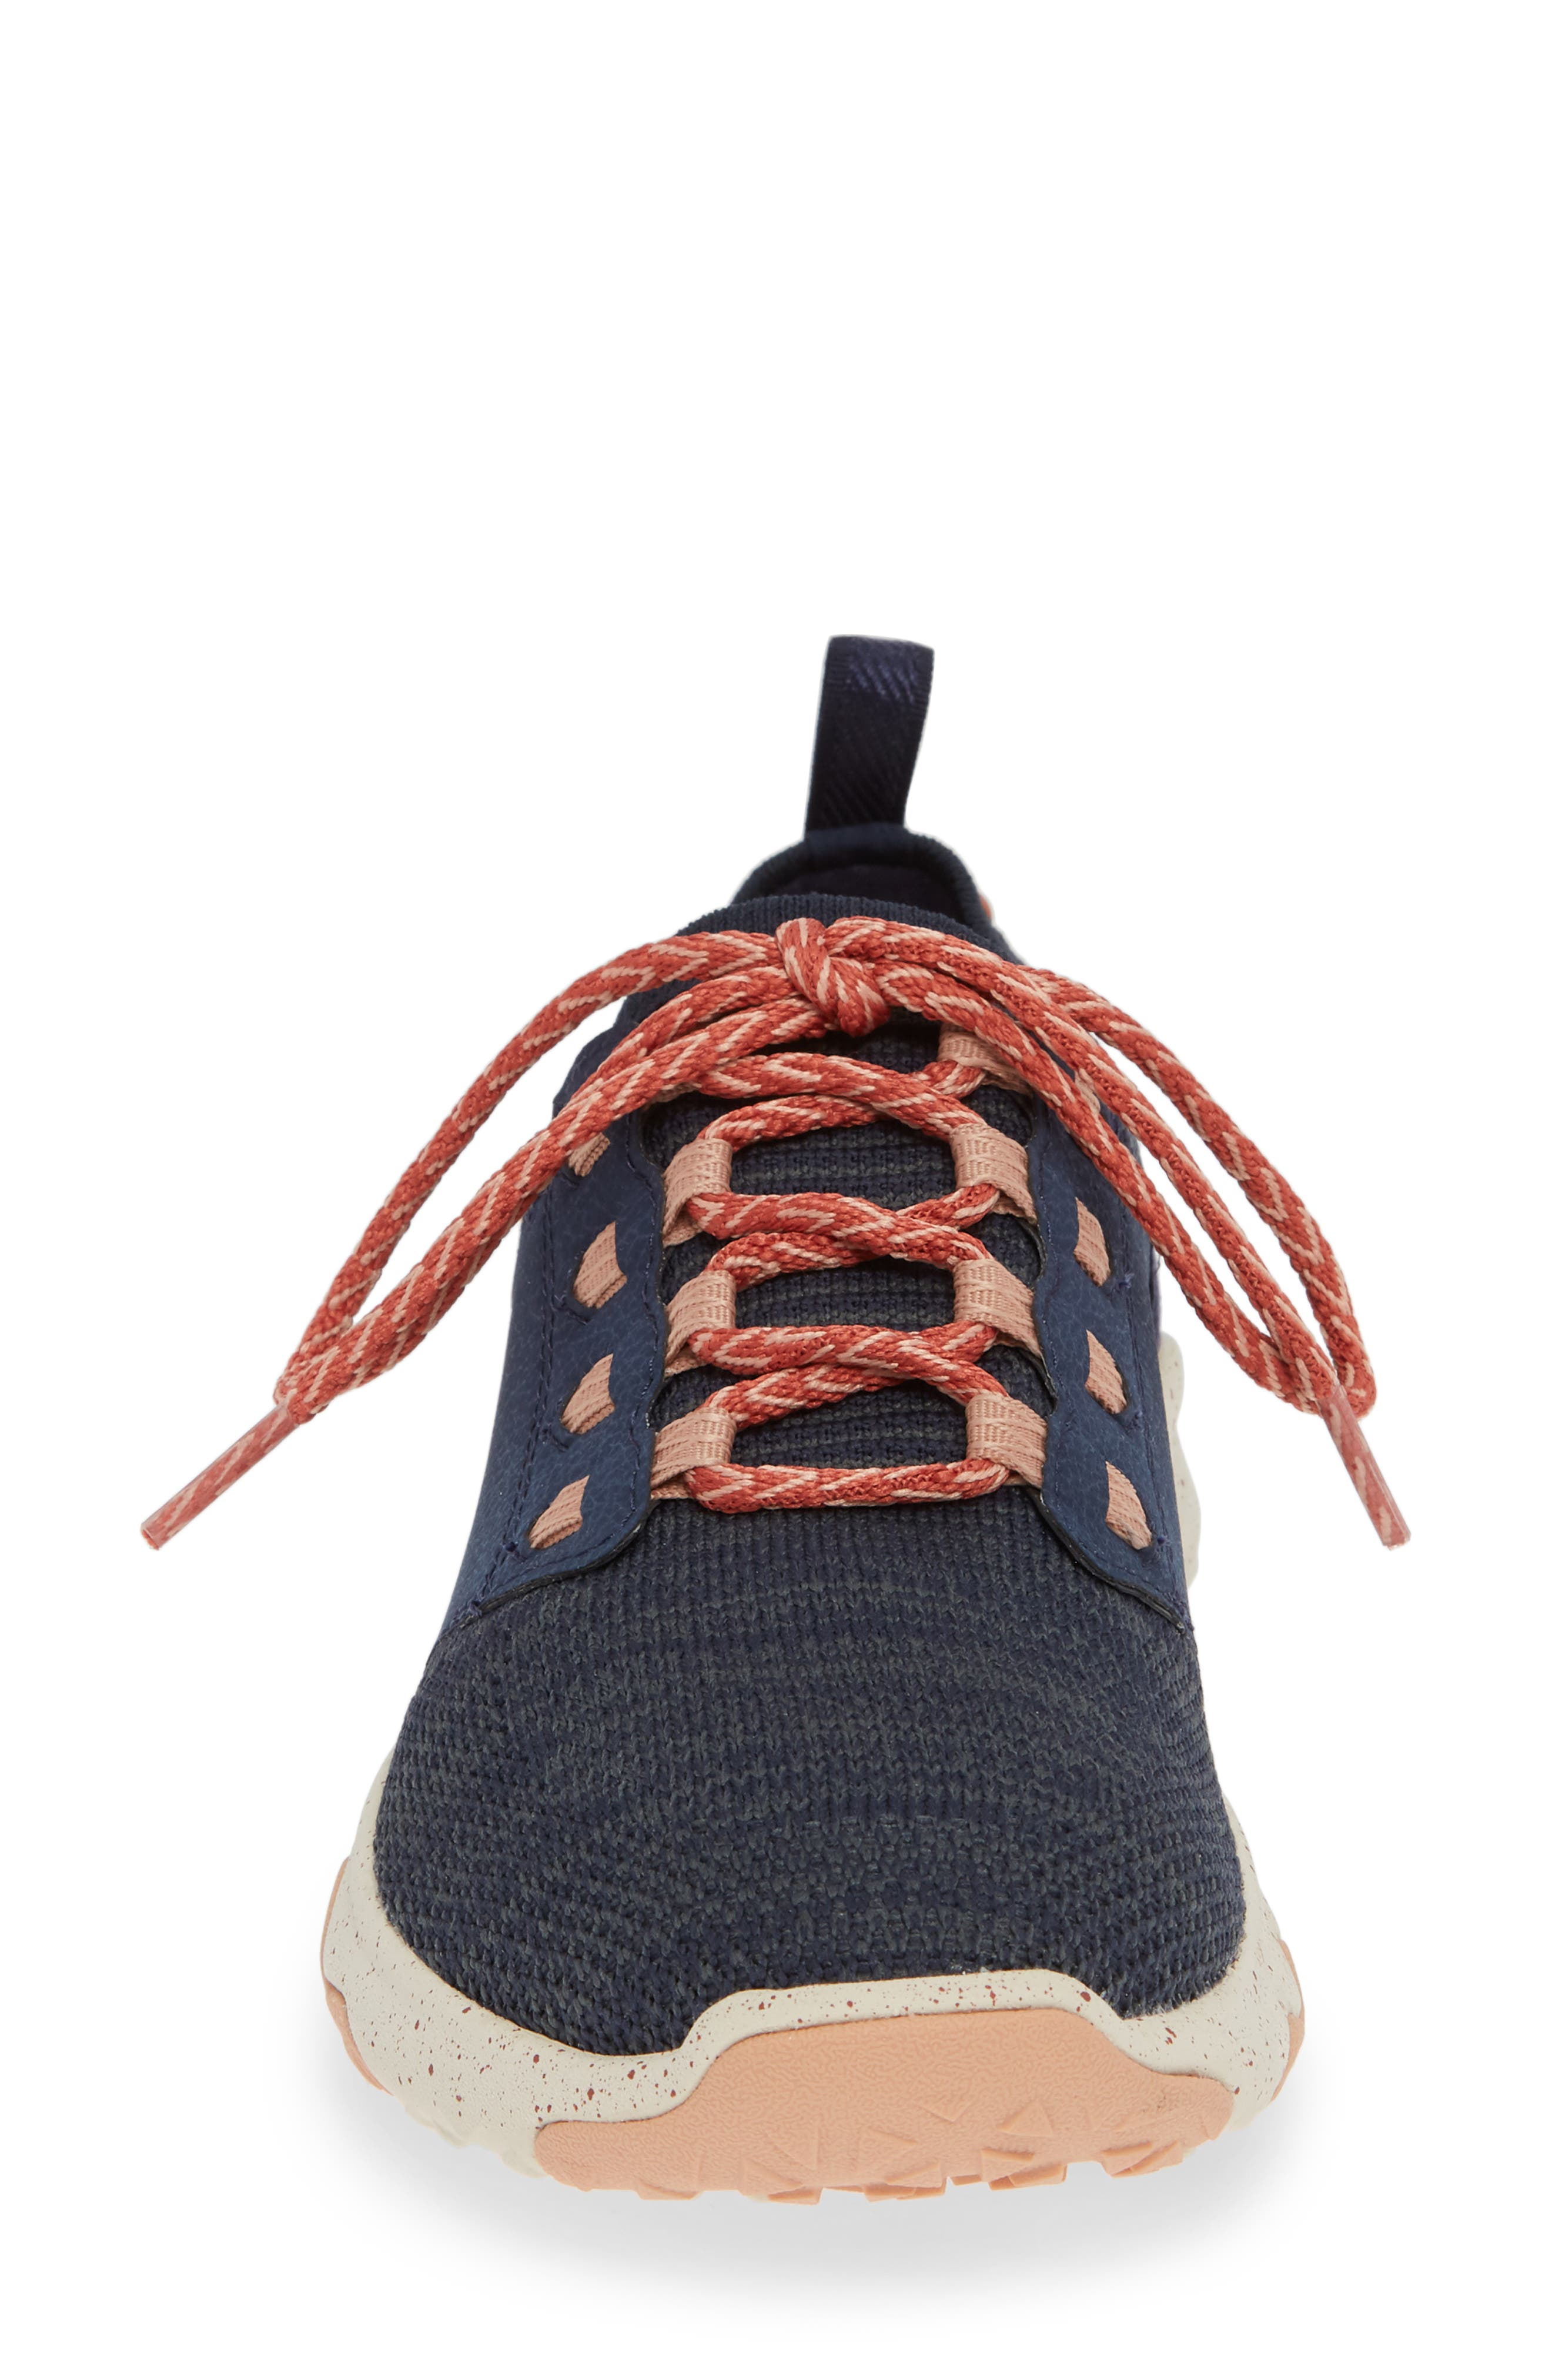 Arrowood 2 Waterproof Knit Sneaker,                             Alternate thumbnail 4, color,                             MIDNIGHT NAVY FABRIC